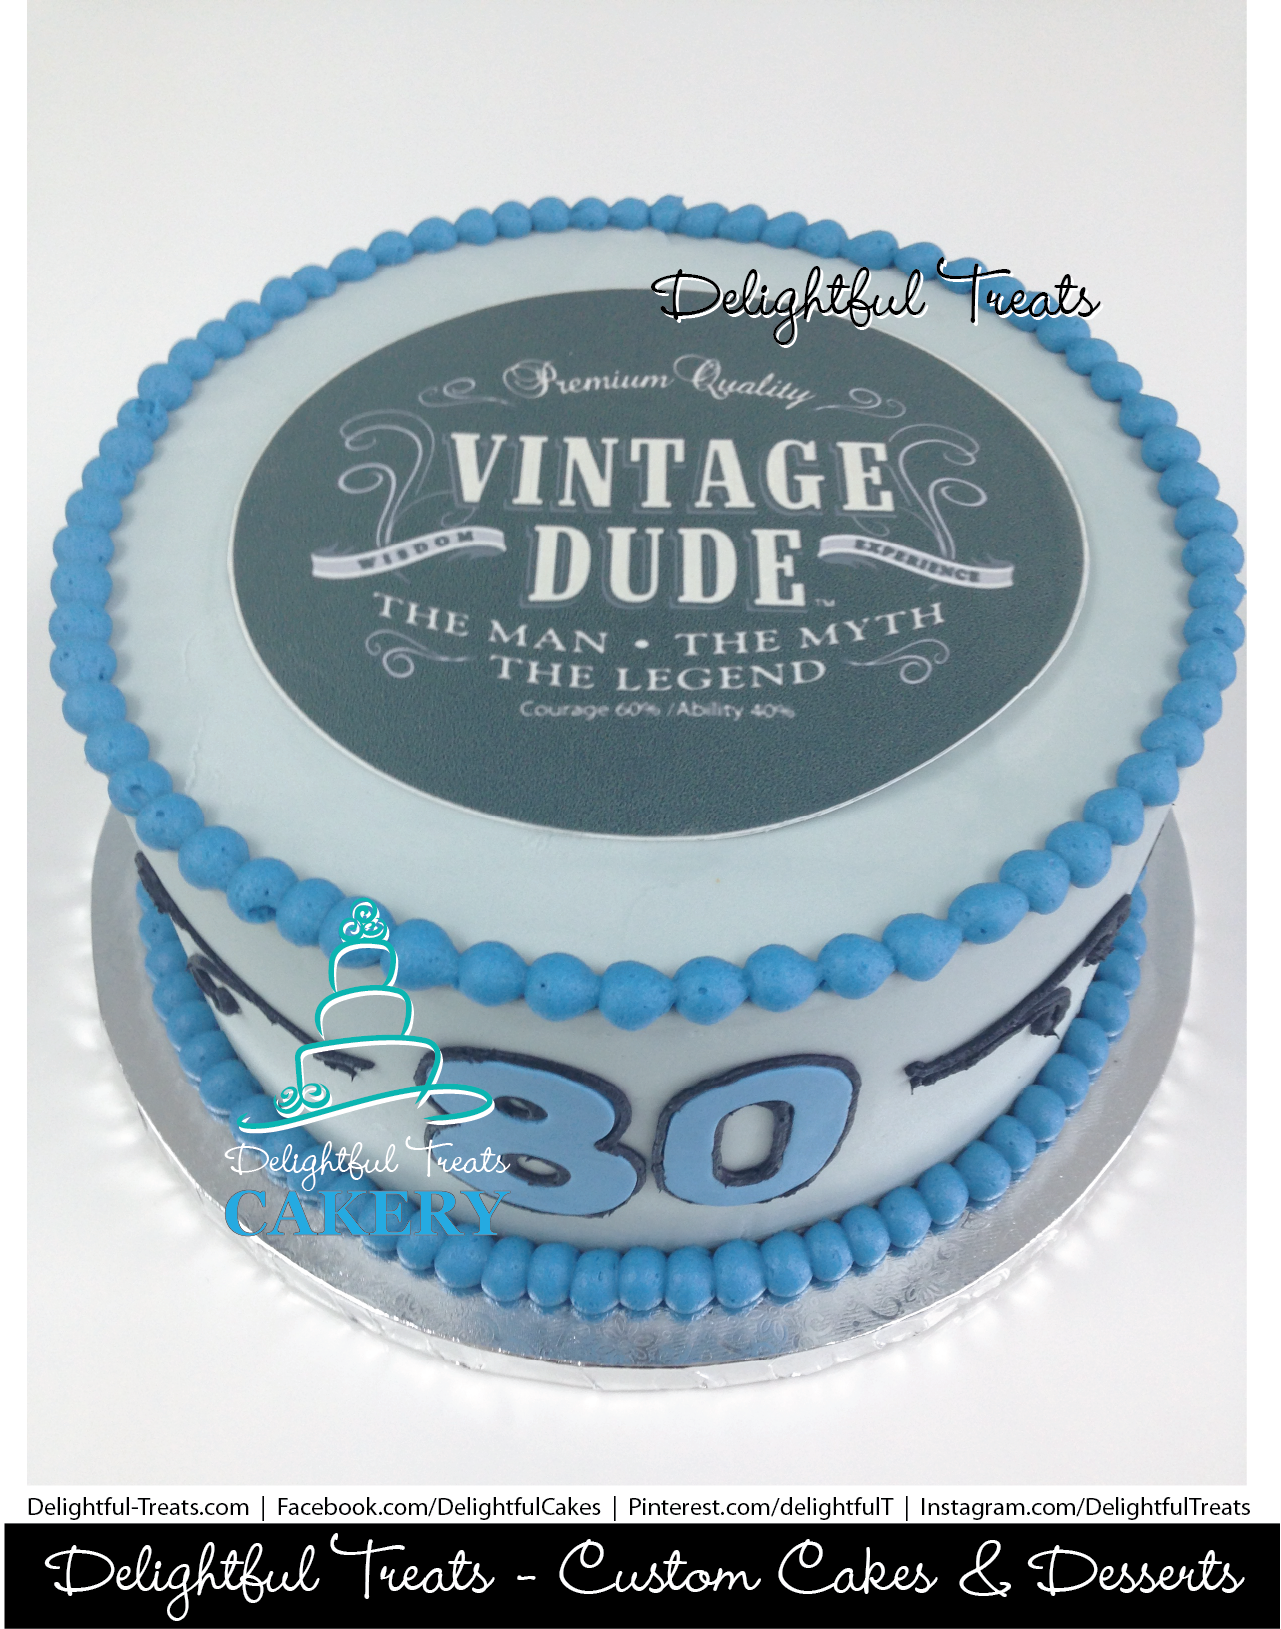 Vintage Dude Cake By Delightful Treats Cakery Orlando